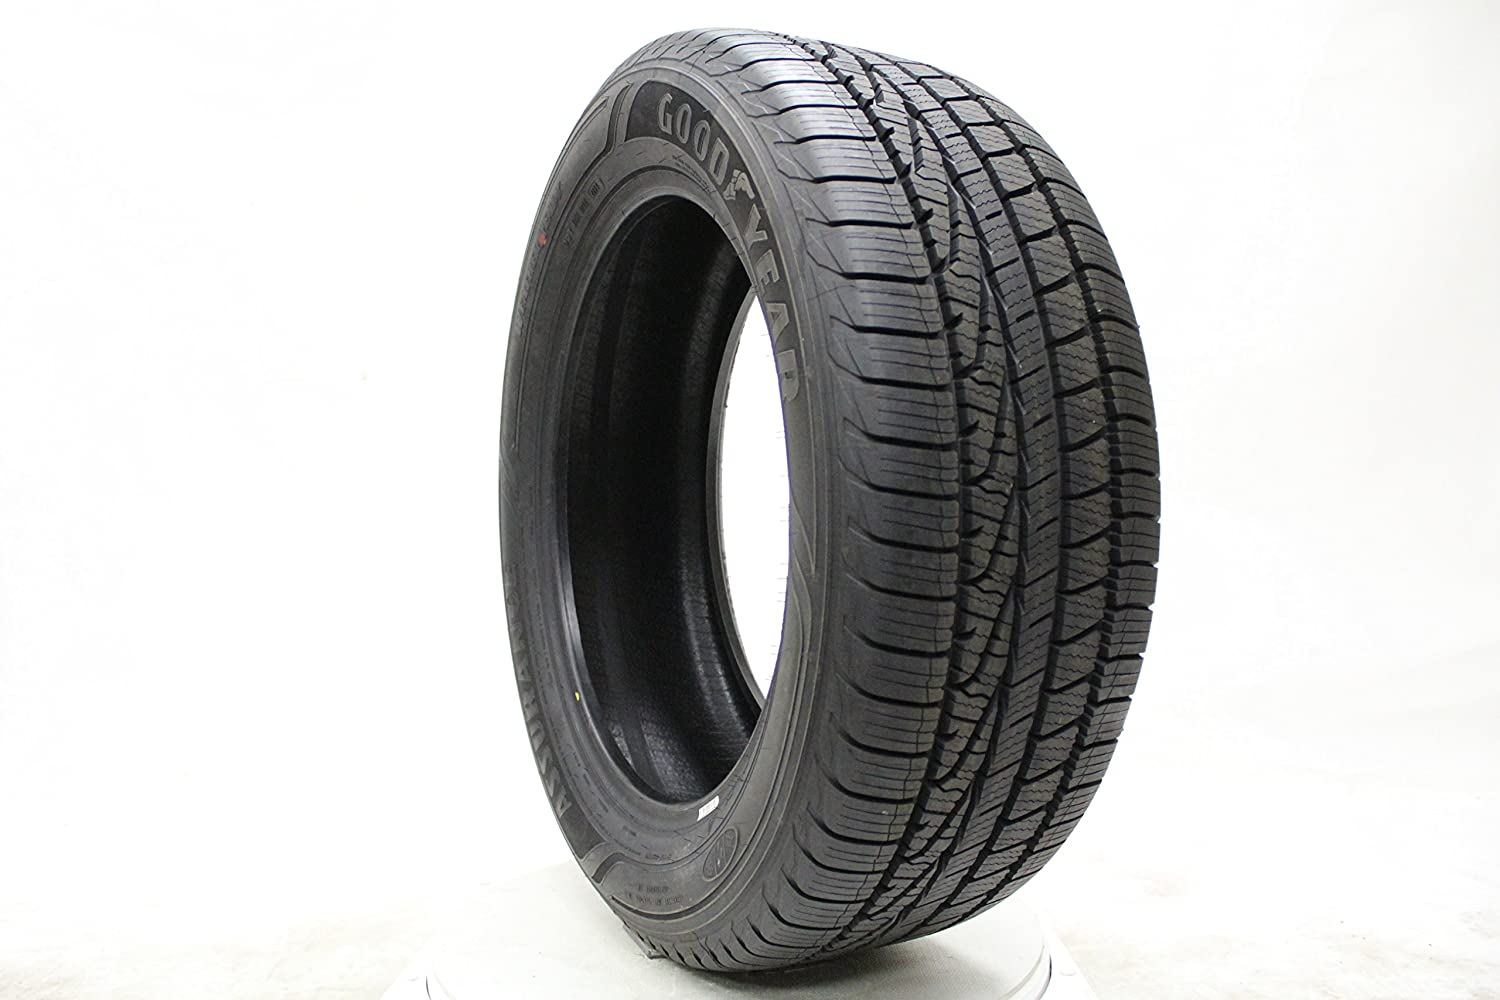 Goodyear Assurance WeatherReady Touring Radial Tire - 225/60R18 100H 767363537